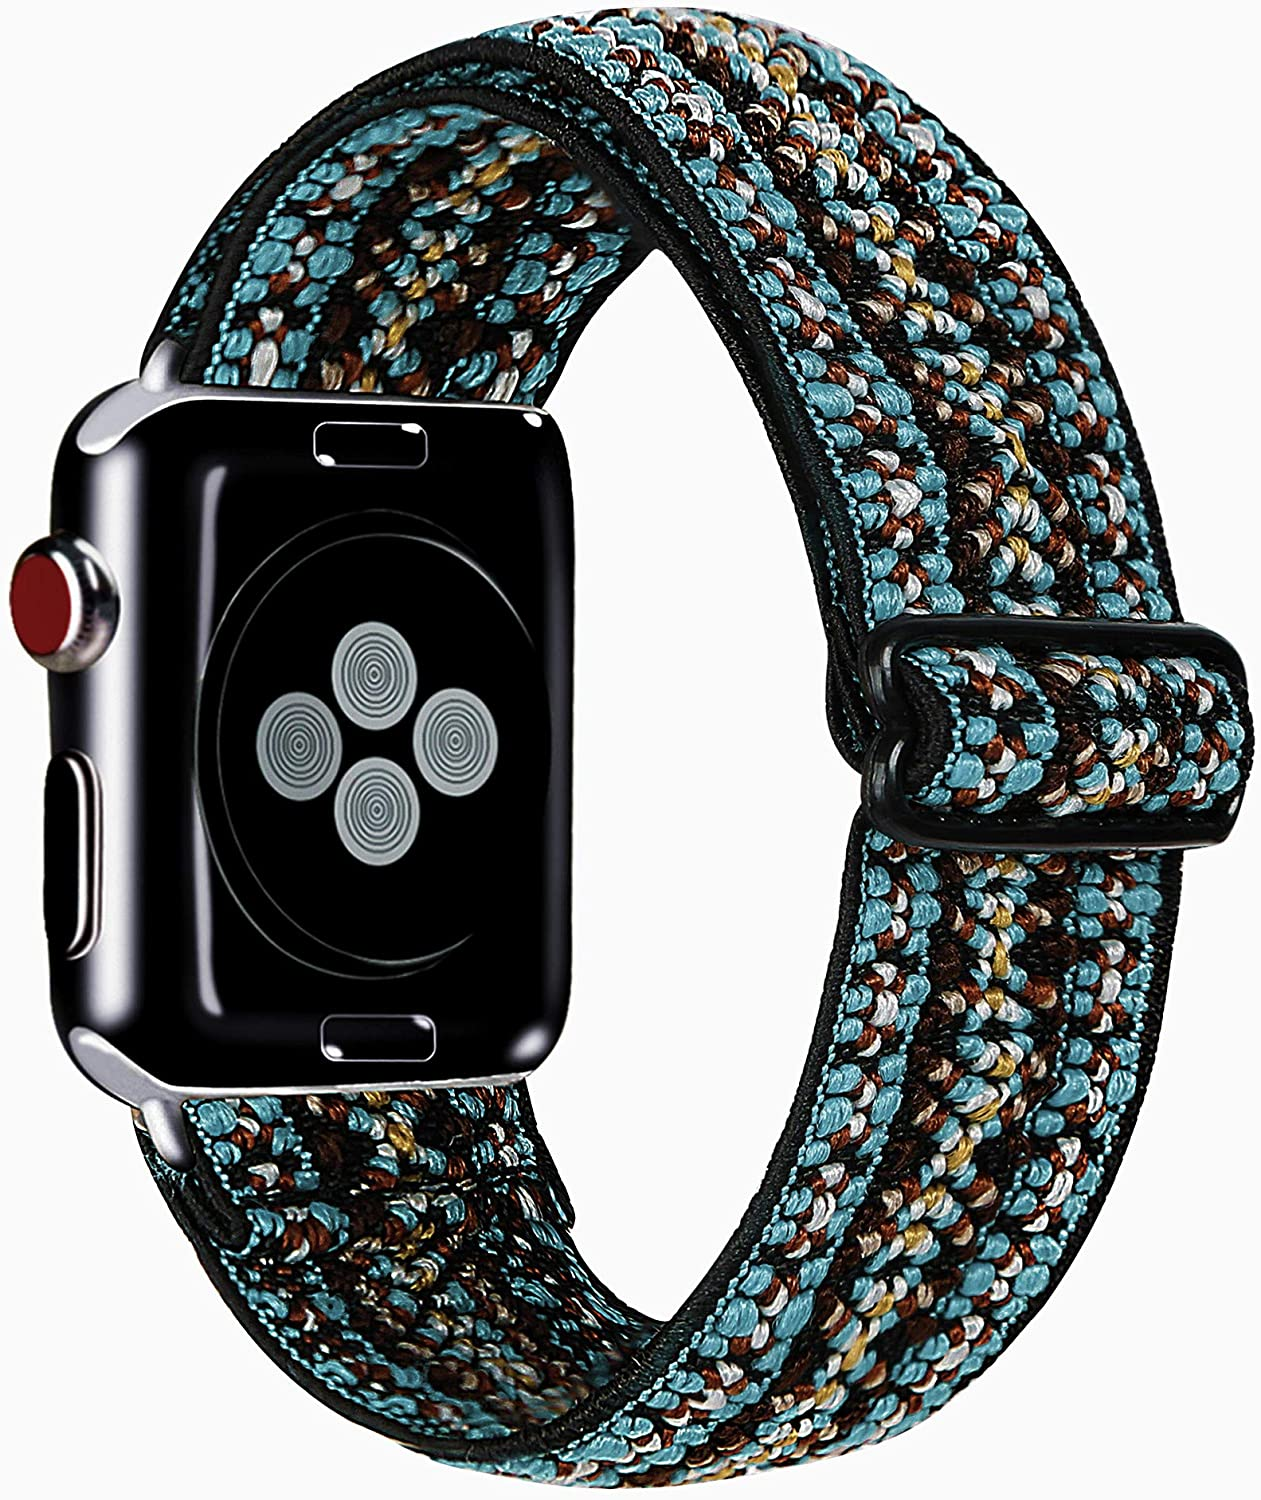 MONOBLANKS Adjustable Elastic Watch Band Compatible with Apple Watch 38mm 40mm 42mm 44mm,Soft Stretchy Loop Strap Replacement Wristband for Iwatch Series SE/6/5/4/3/2/1